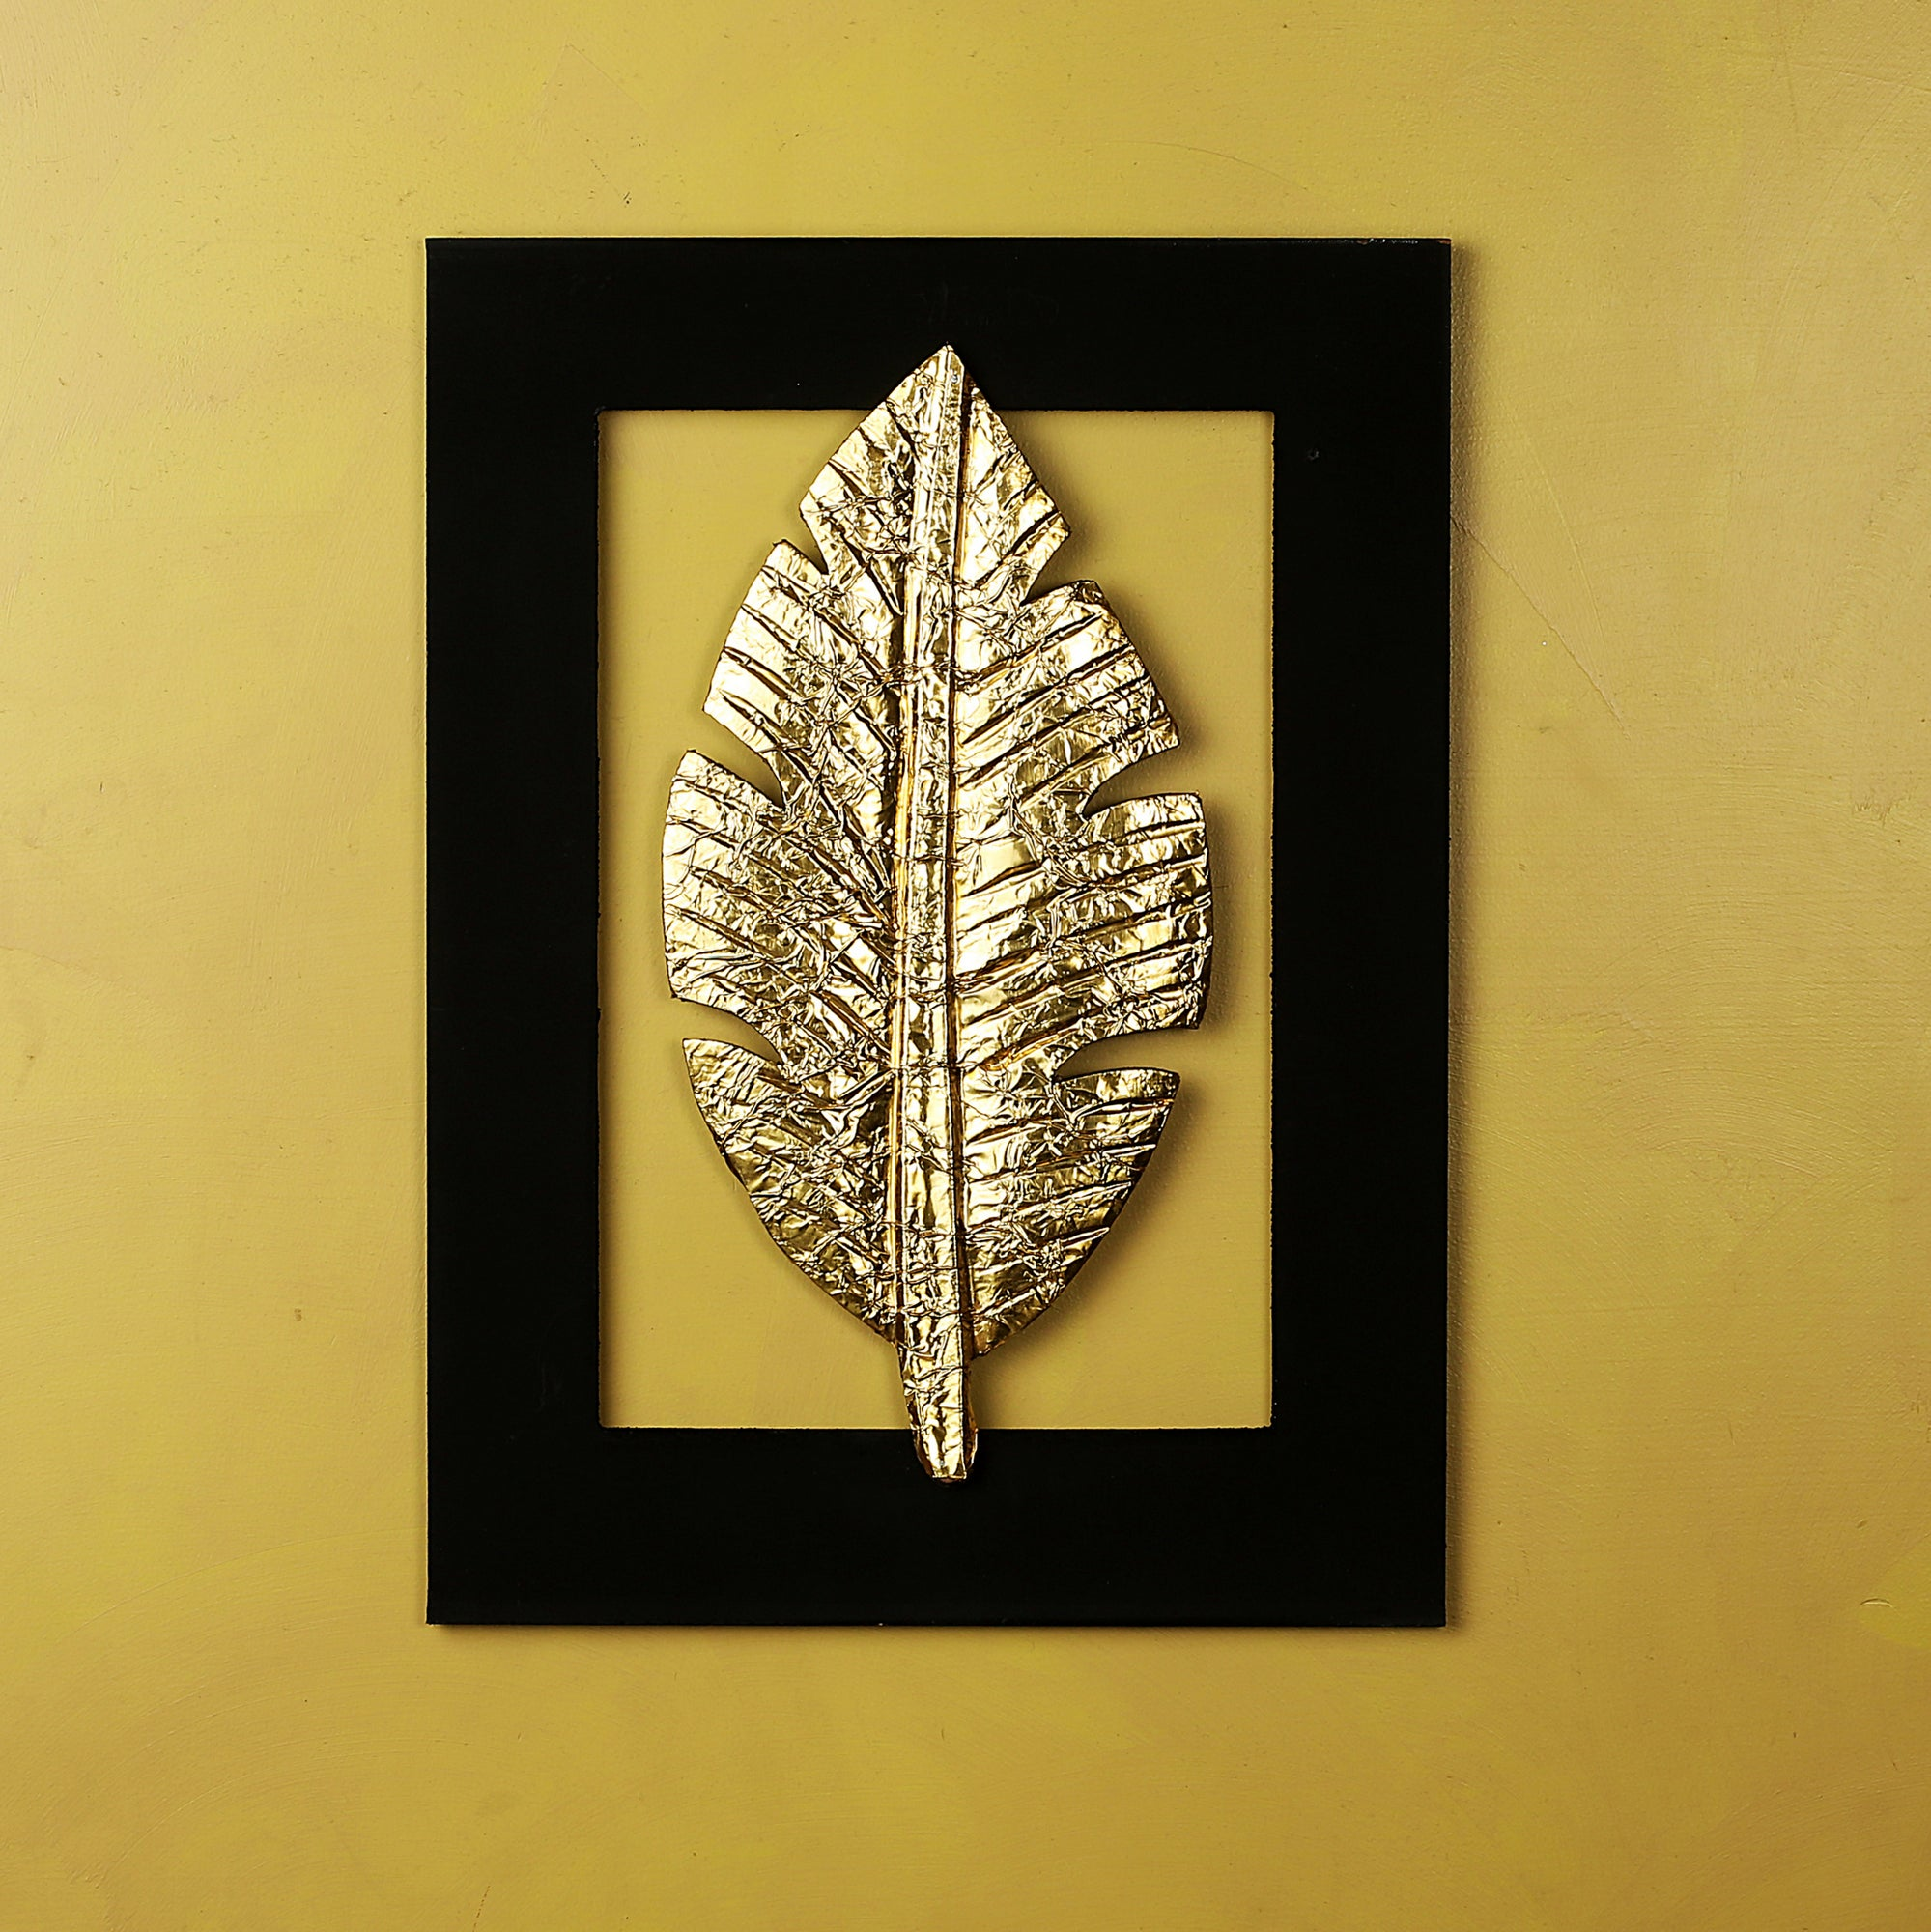 Cultural Concepts brings you Beautiful Wall Art at great prices ...